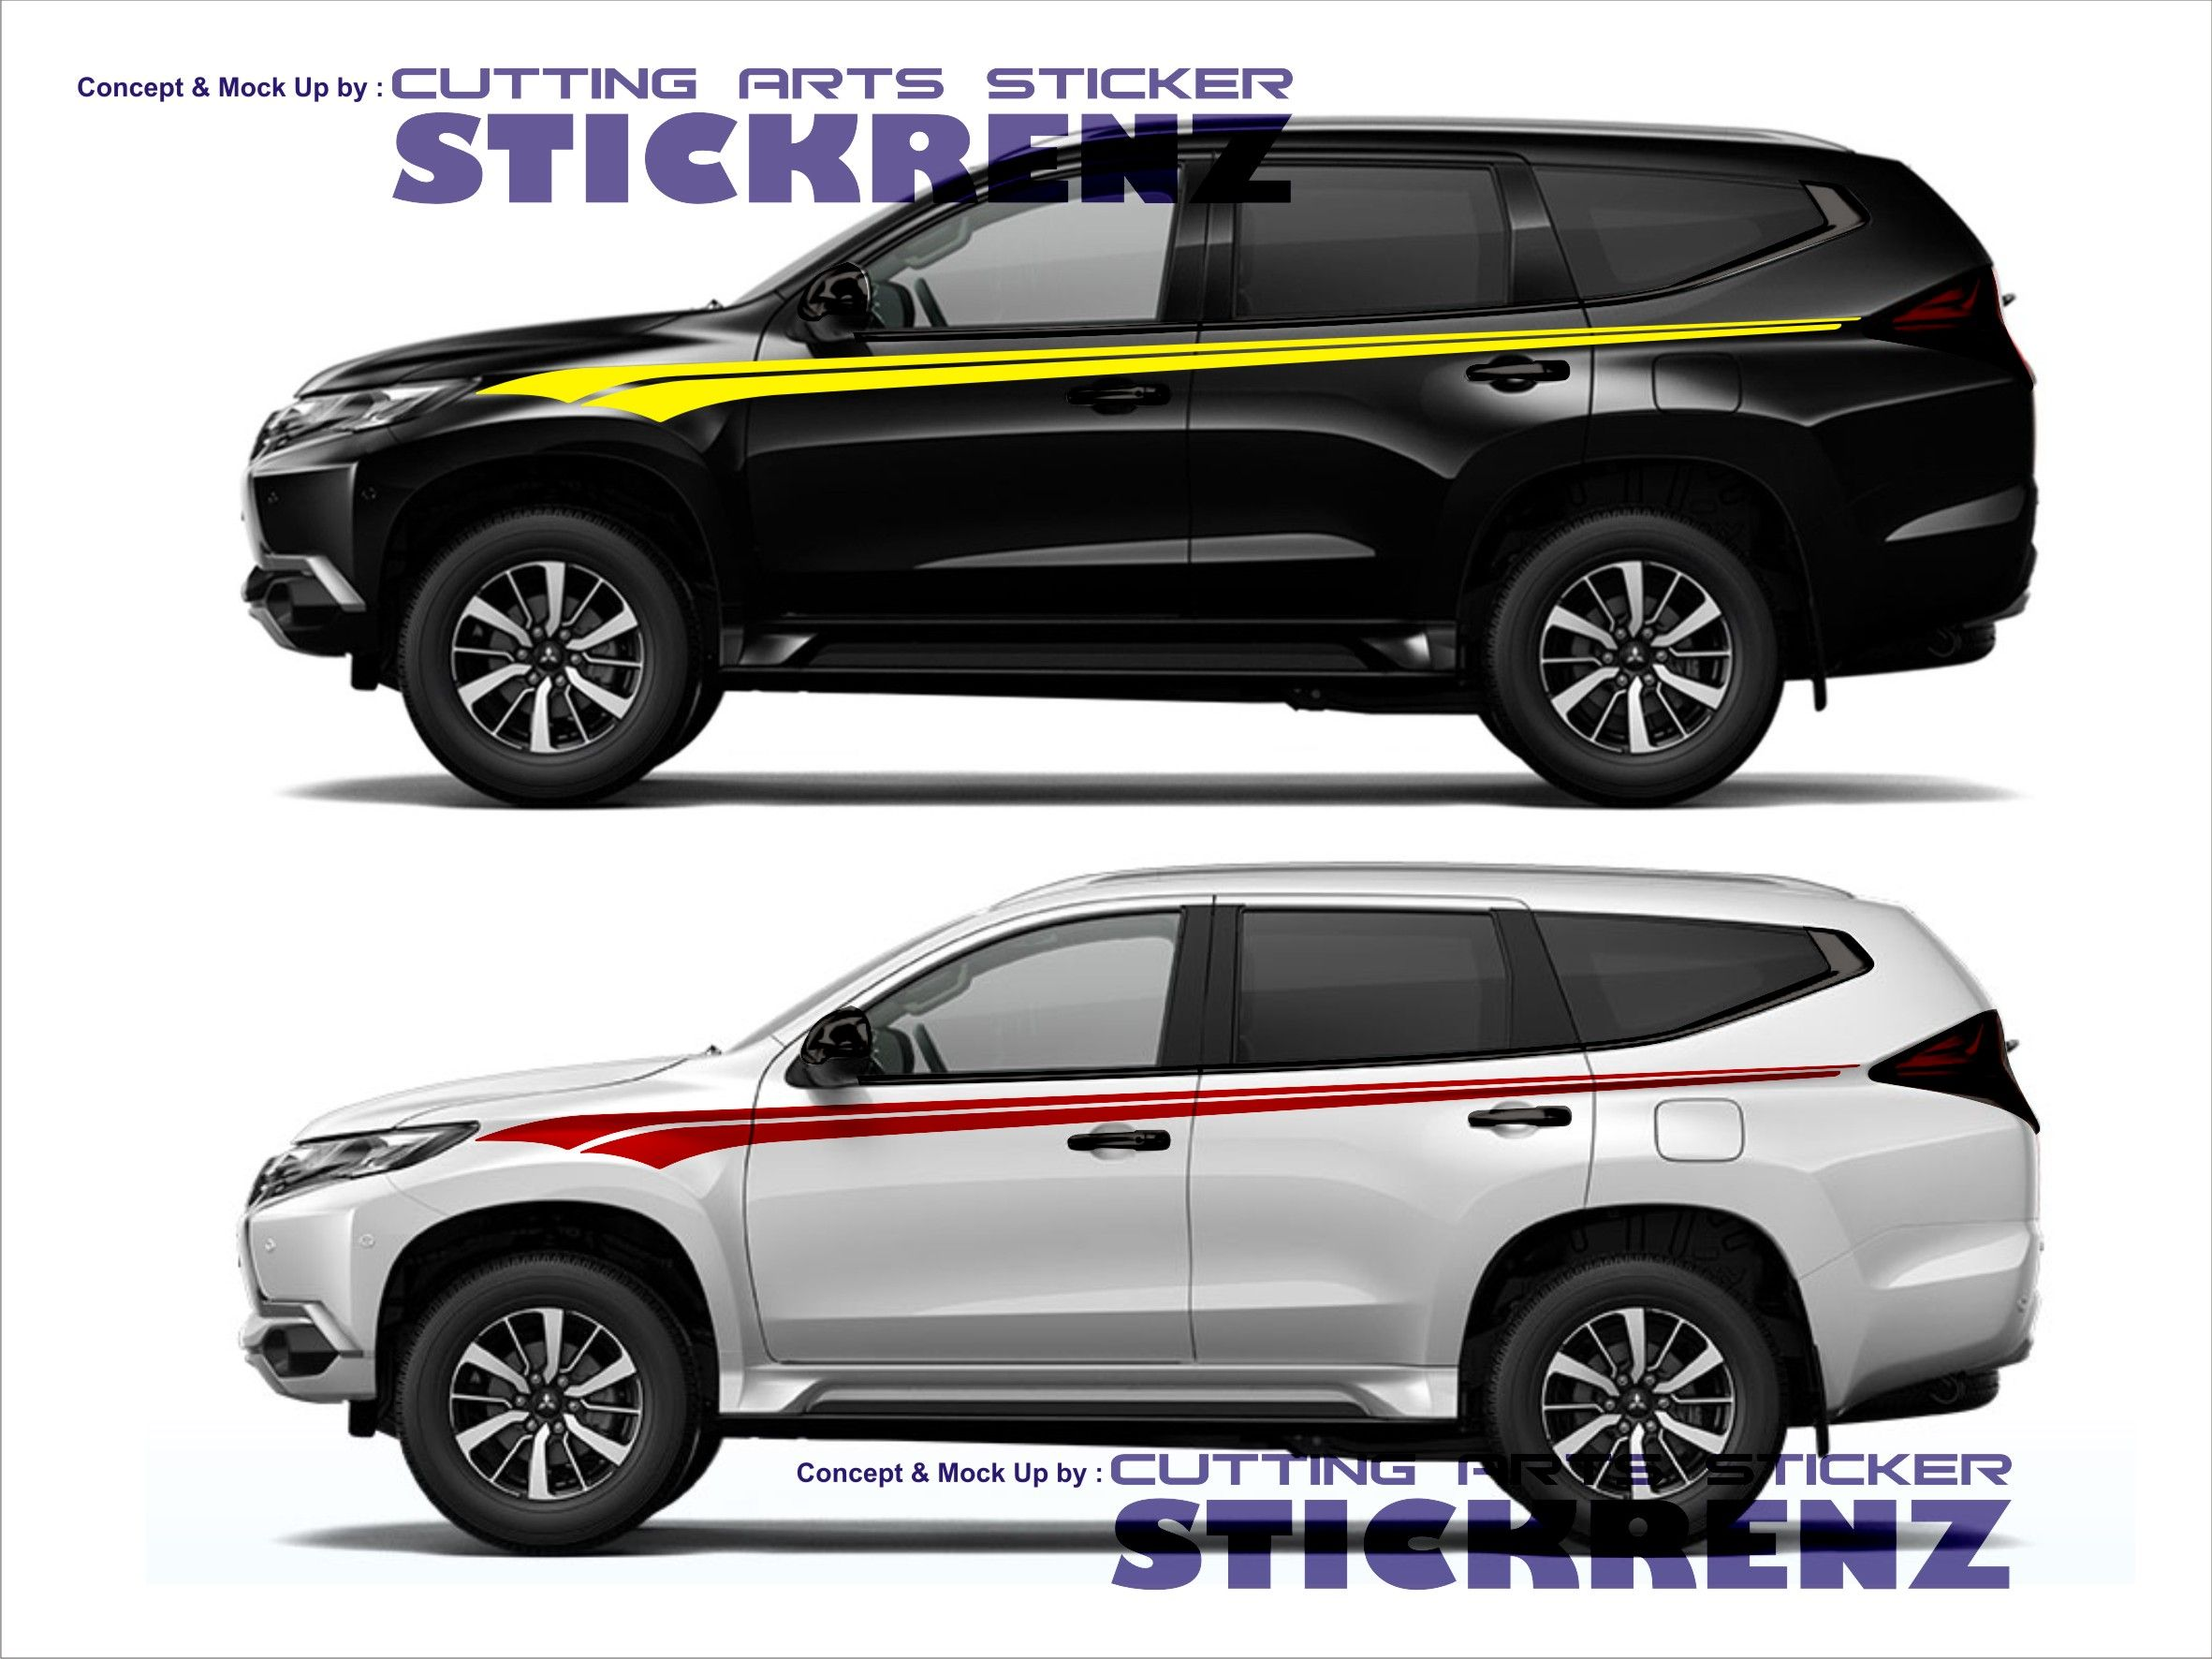 Car custom side cutting sticker concept pajero 006 sticker stickers decal